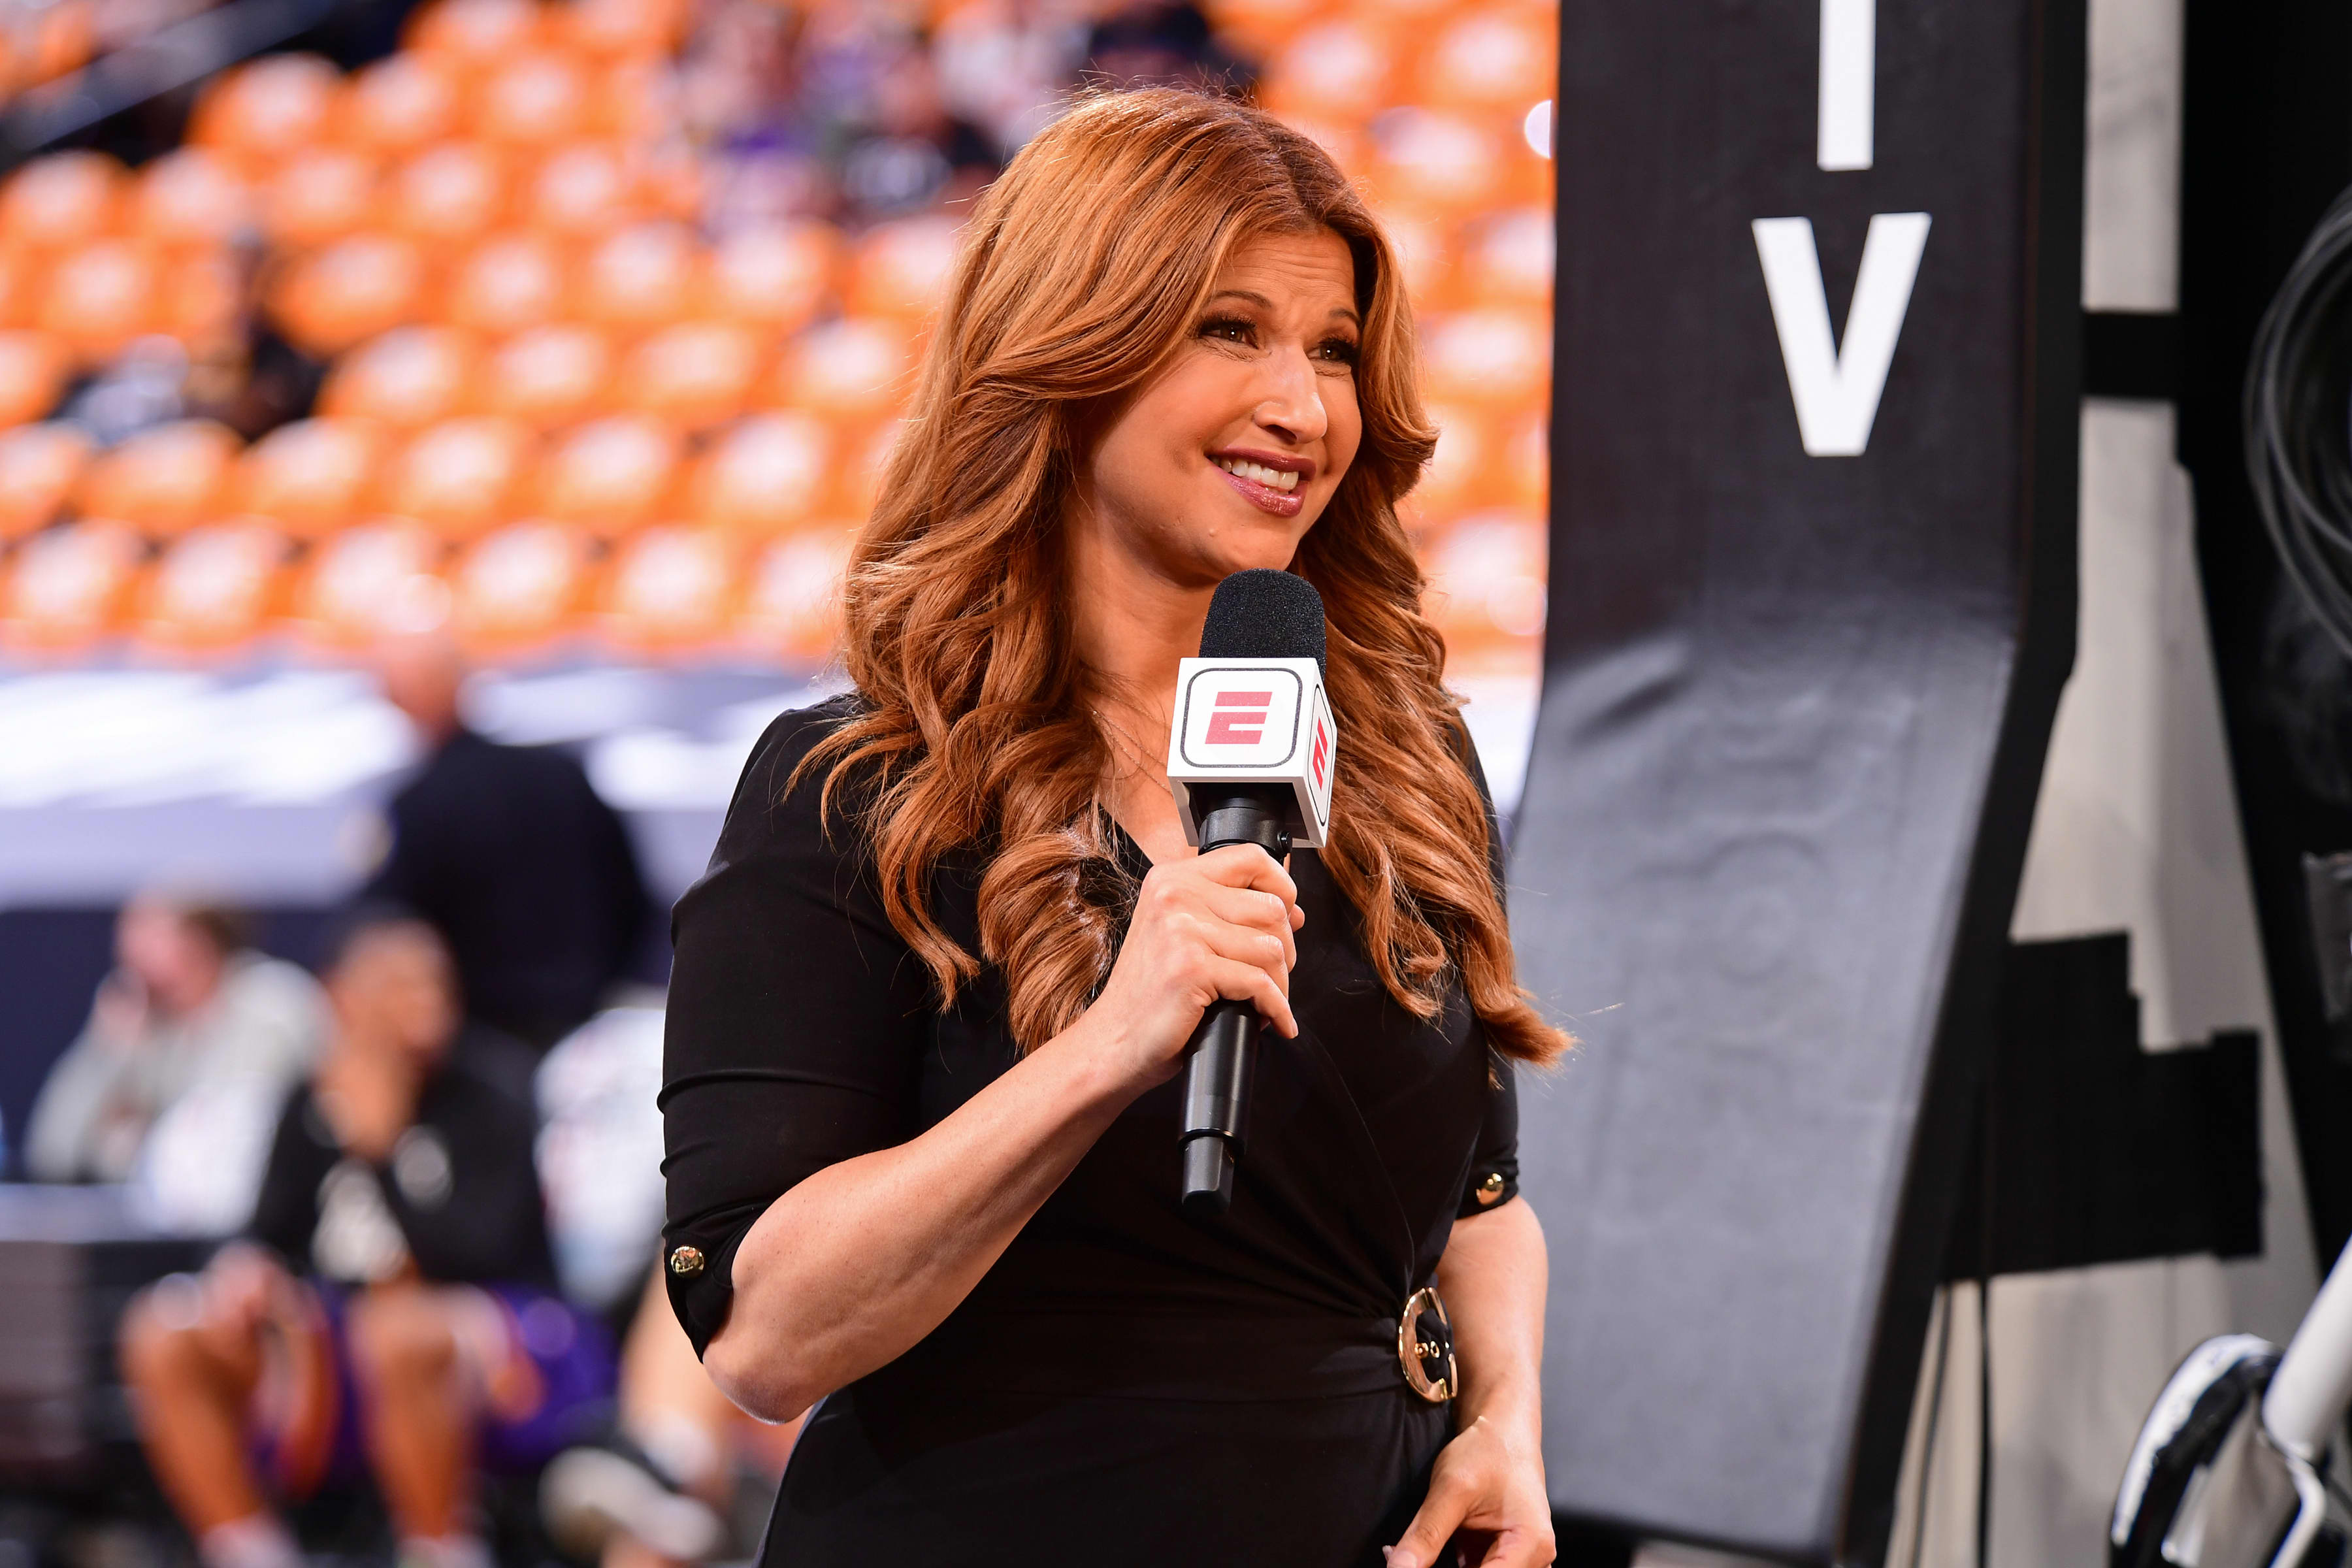 ESPN reporter Rachel Nichols' show fails to air after she's pulled from NBA Finals due to Maria Taylor race comment